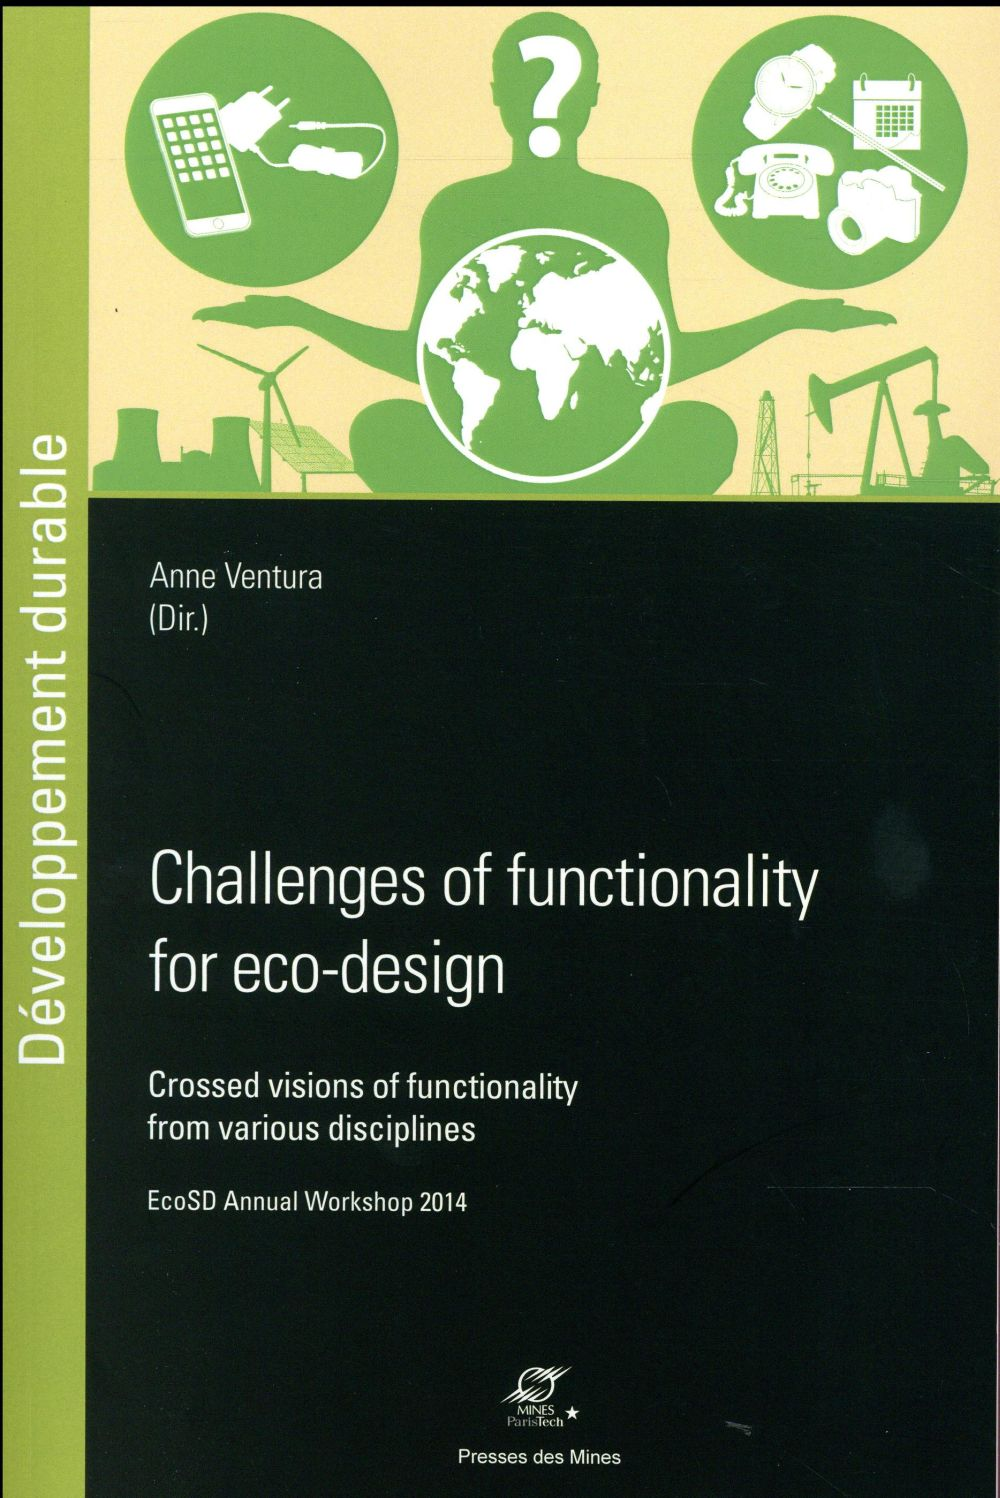 challenges of functionality for eco-design ; crossed visions of functionality from various disciplines